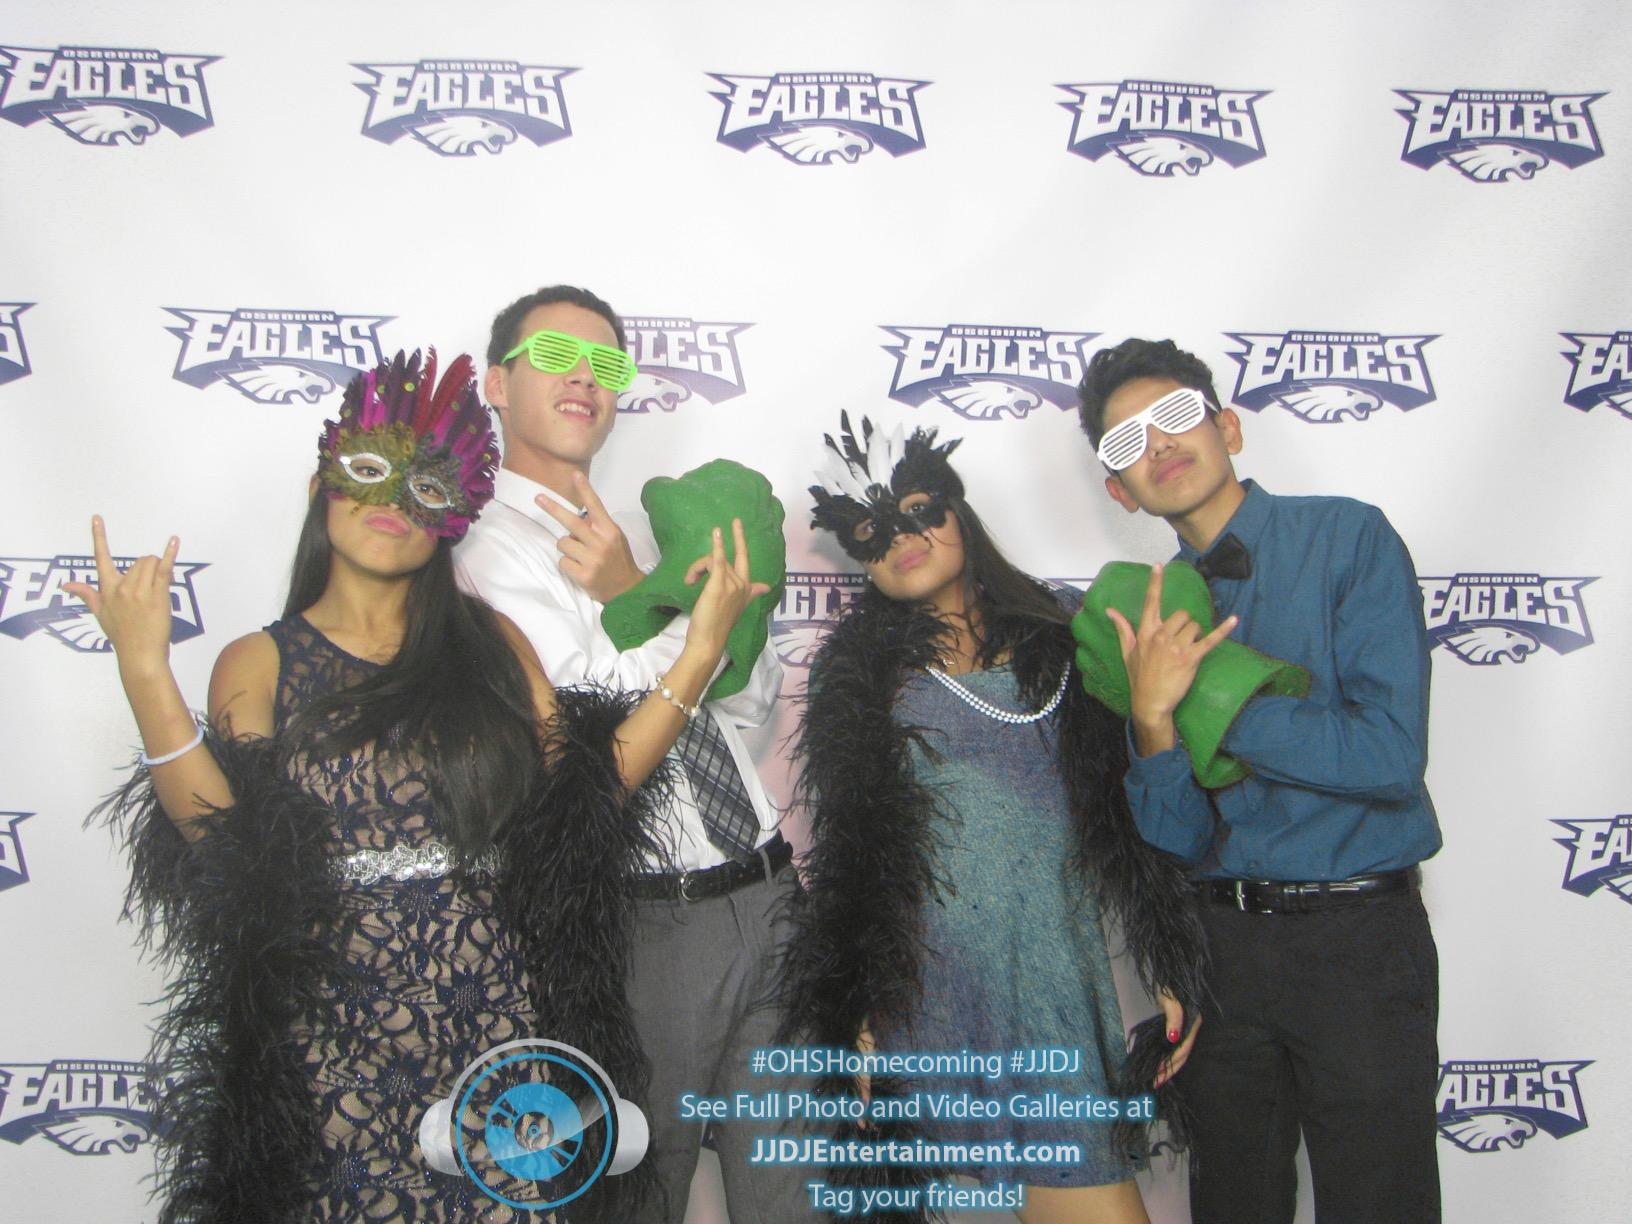 OHS 2014 Homecoming Photobooth -426